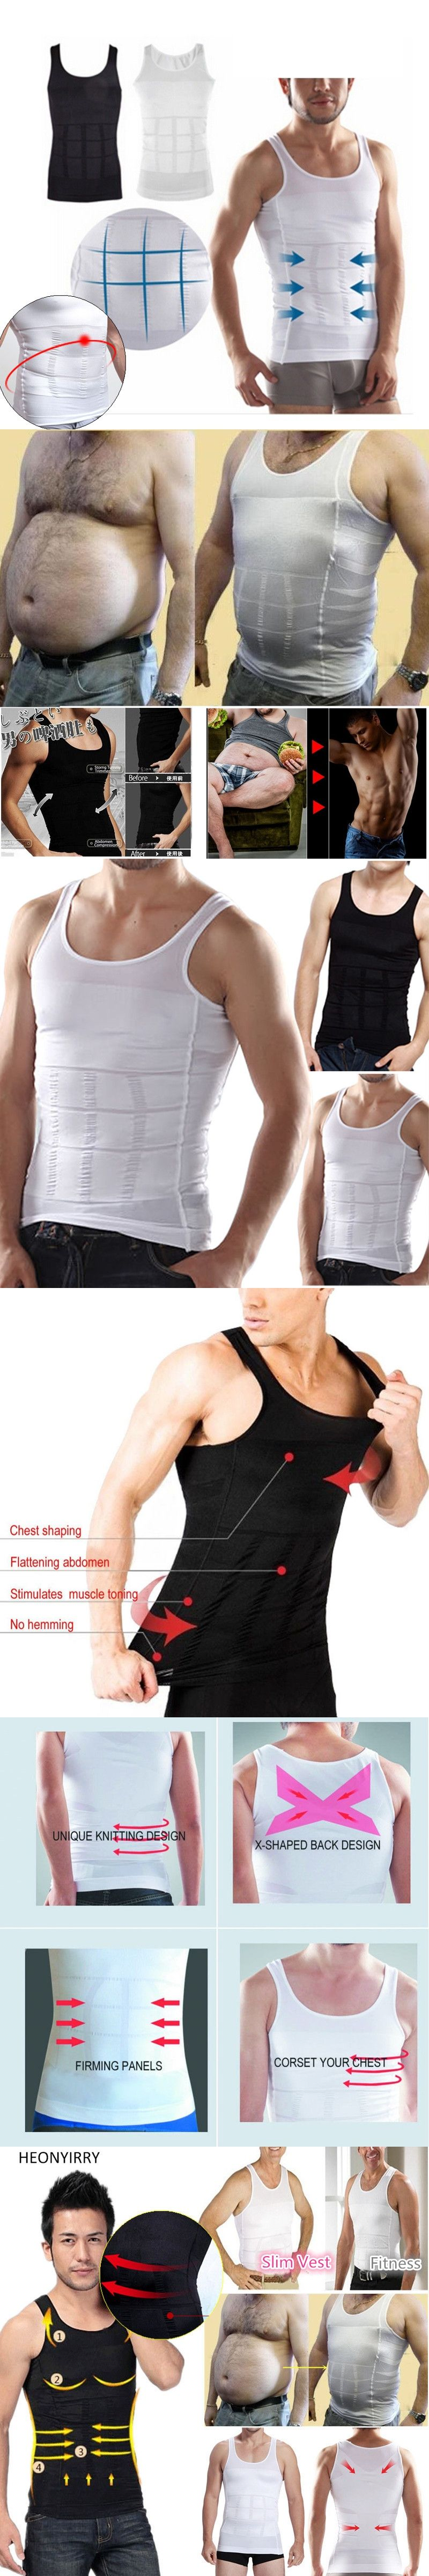 b36354d1b58a3 2017 Men Shapers Solid Sleeveless Firm Tummy Belly Buster Vest Control  Slimming Belt Hot Shaper Underwear